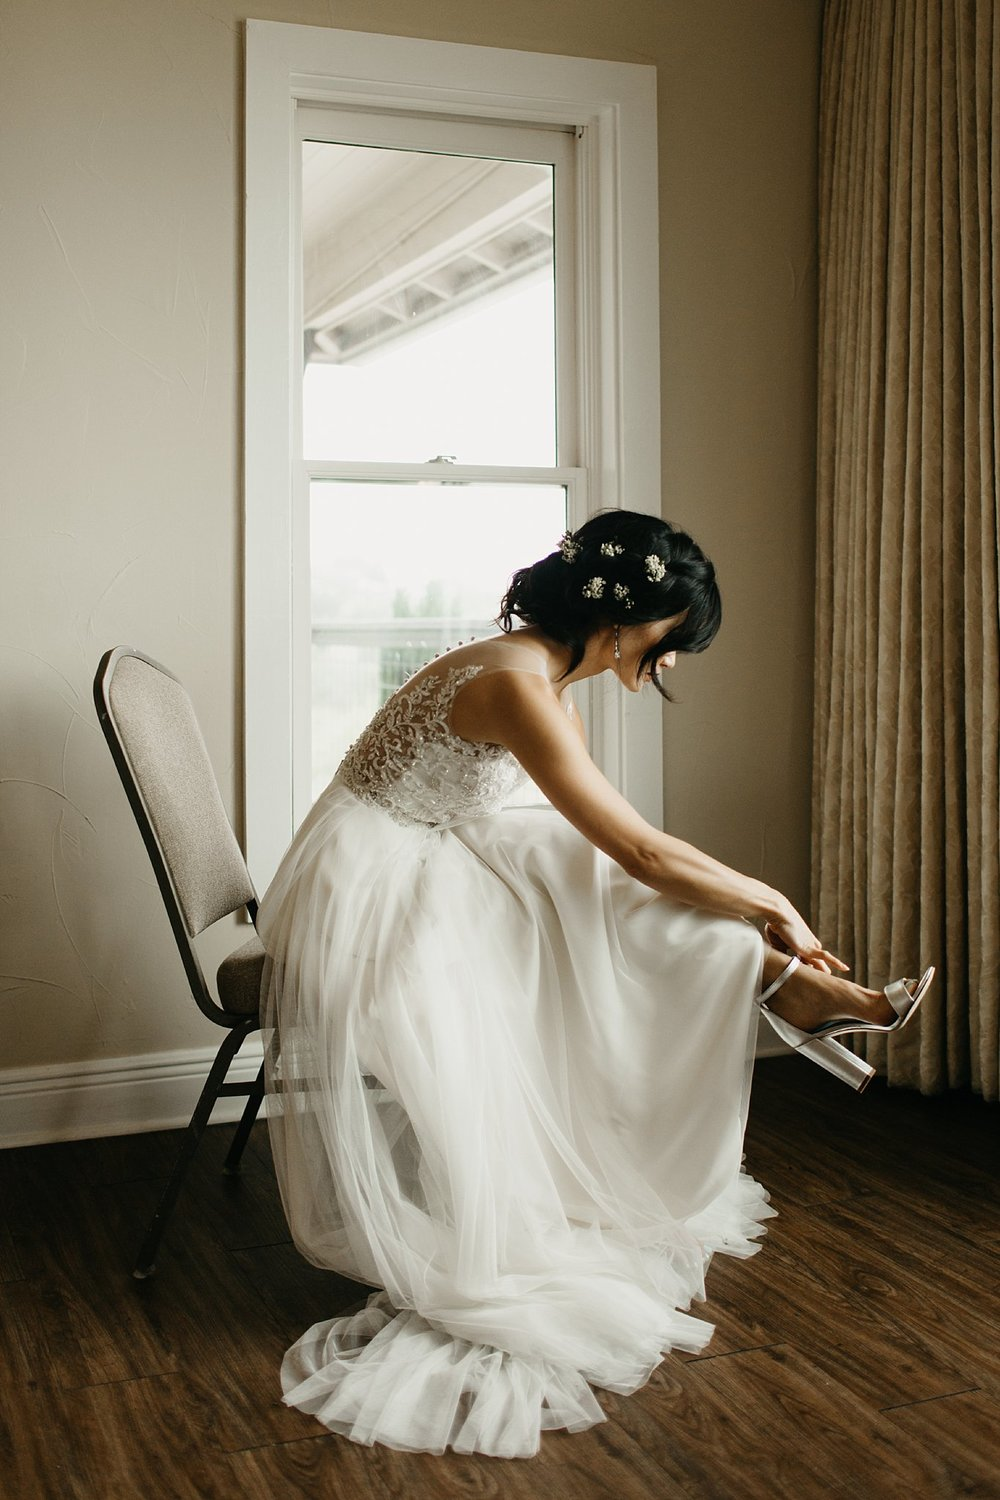 Wilderlove Co_Austin Texas_Vintage Villas Hotel_Wedding Photography_0011.jpg